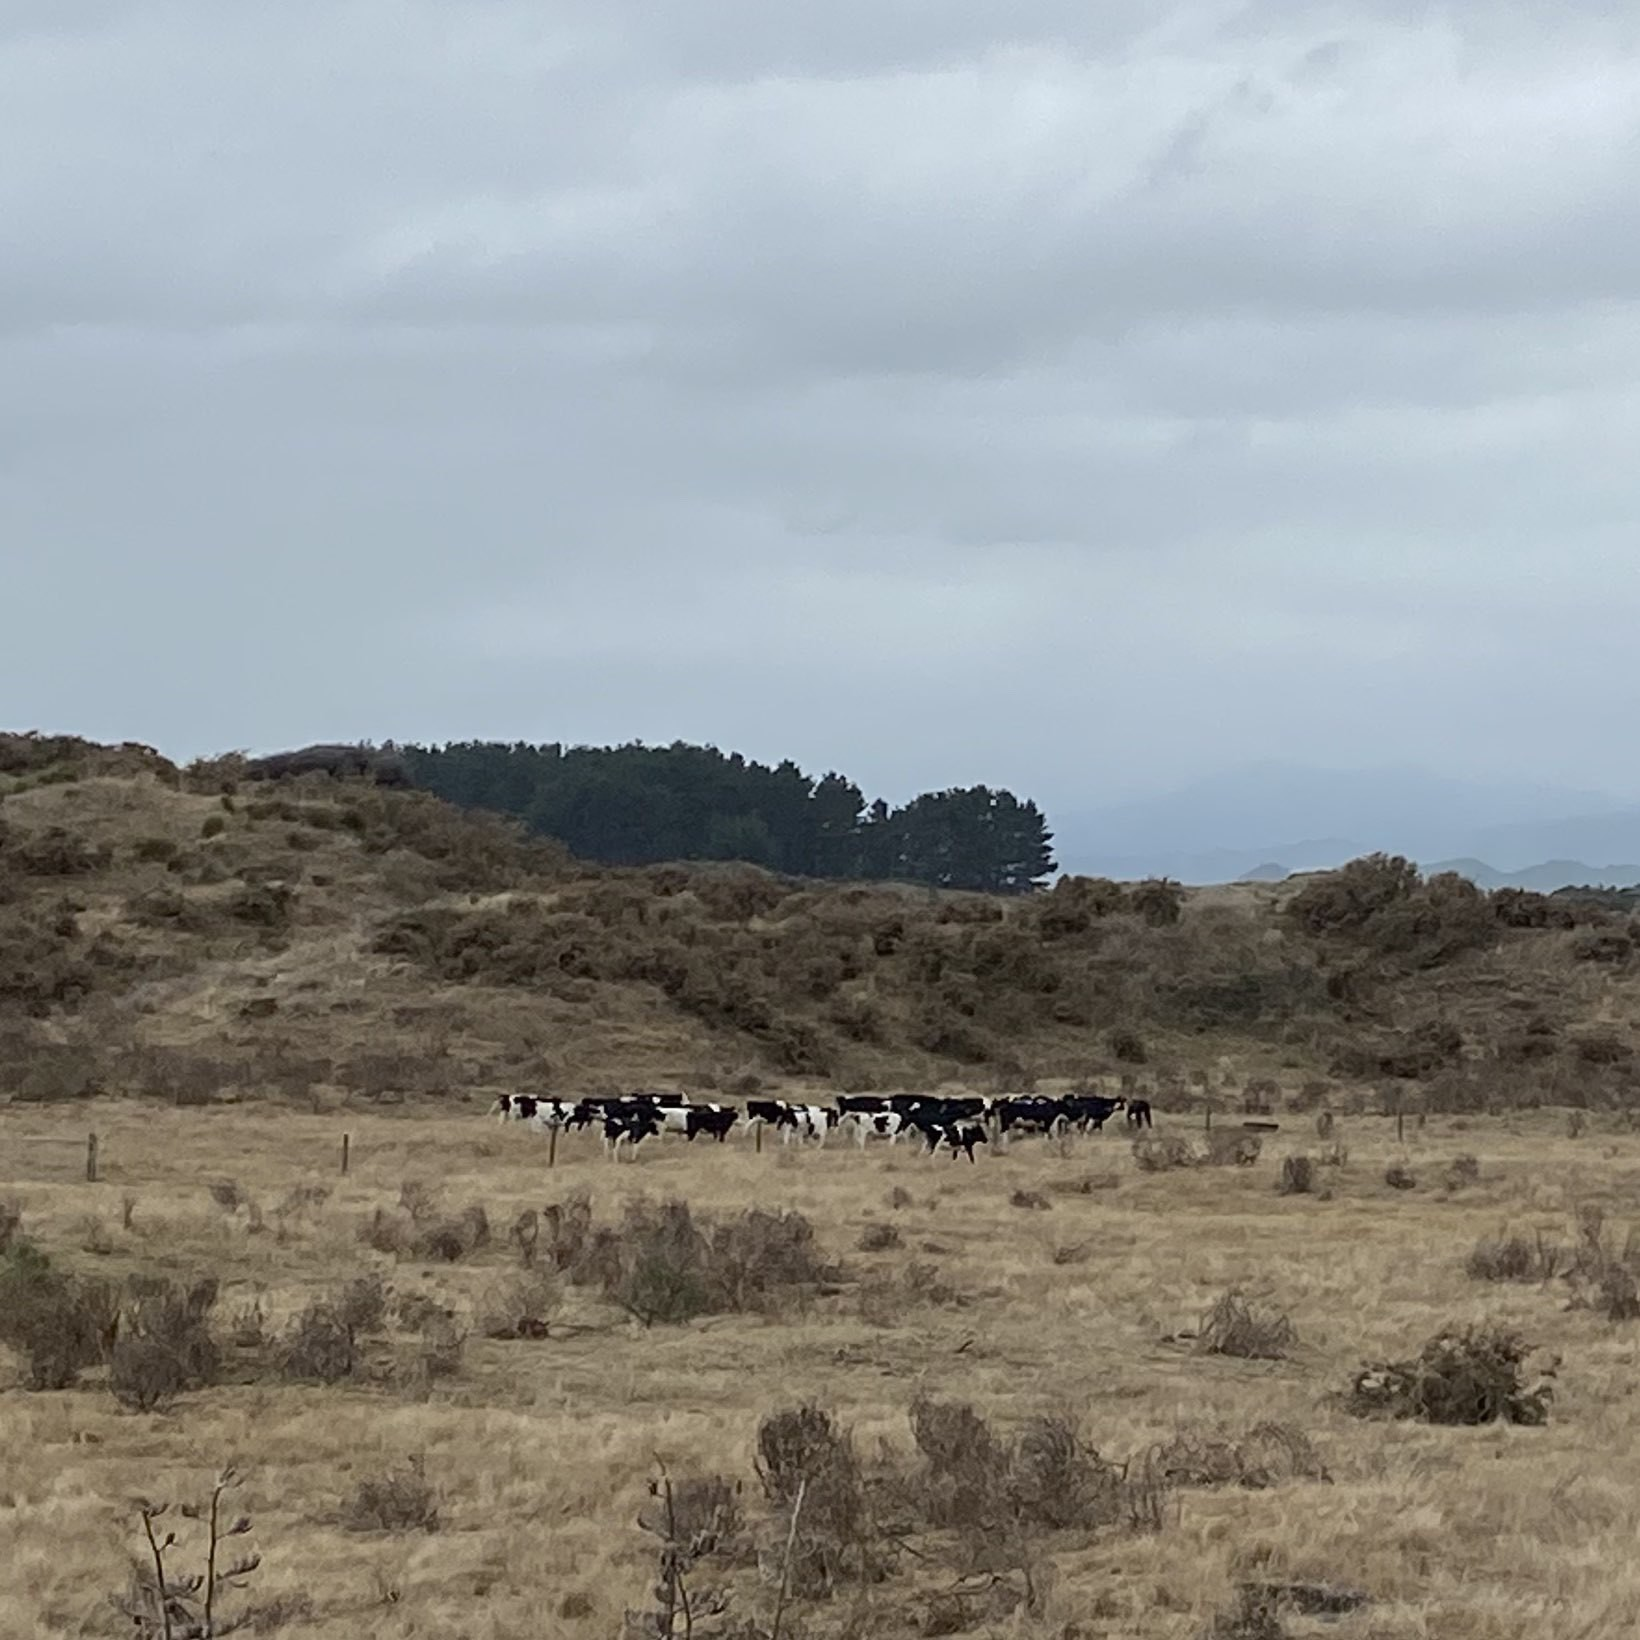 Steers in a herd, some distance away.